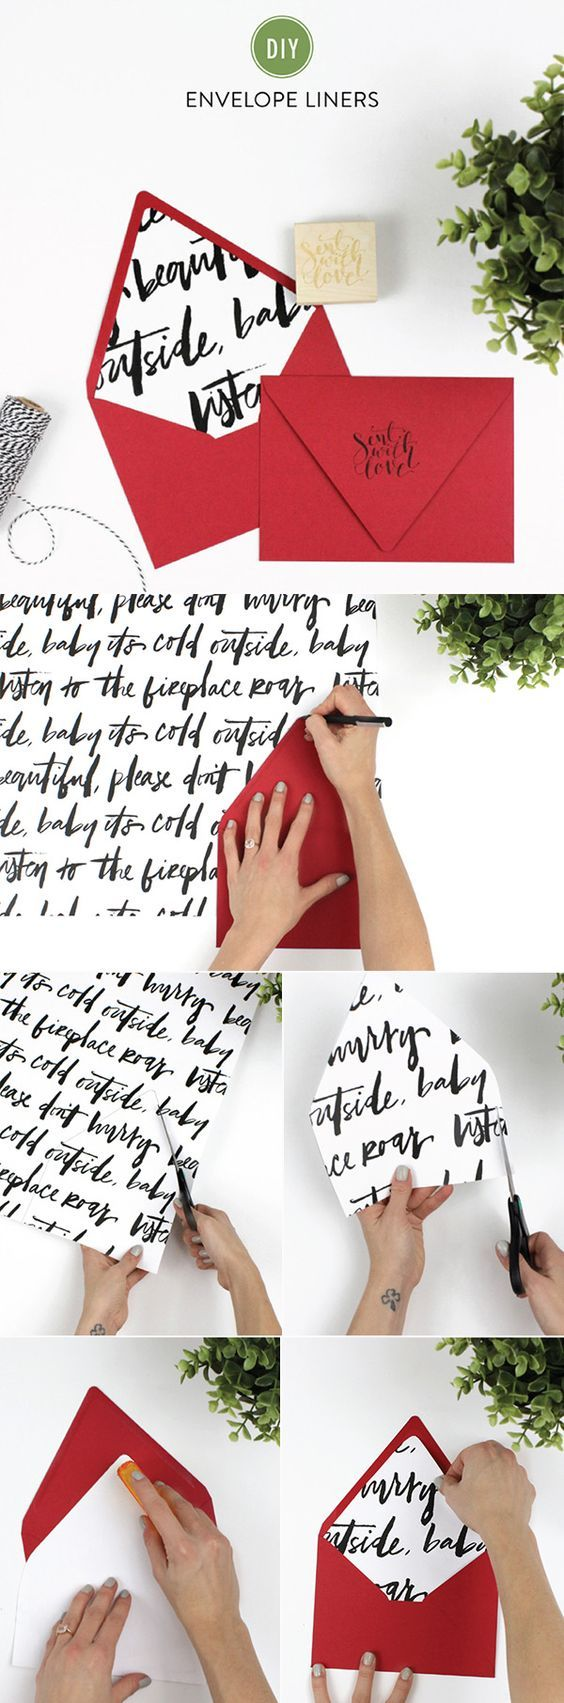 14 best Envelope Liner Ideas & DIYs images on Pinterest ...